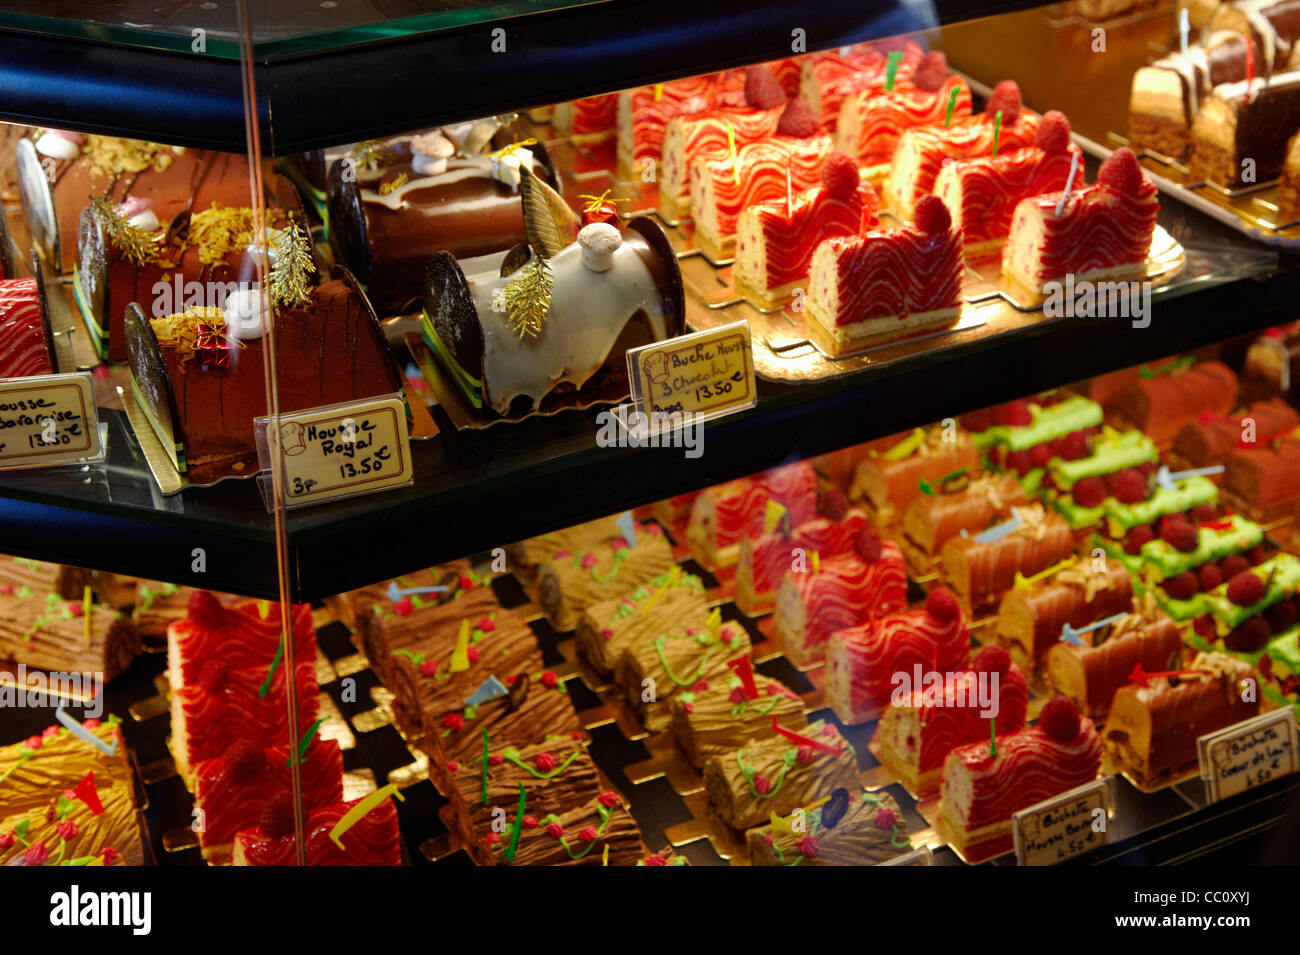 Christmas patisserie display in Boulangerie Alexandra, a popular bakery in the suburbs of Paris. Le Perreux-sur - Stock Image